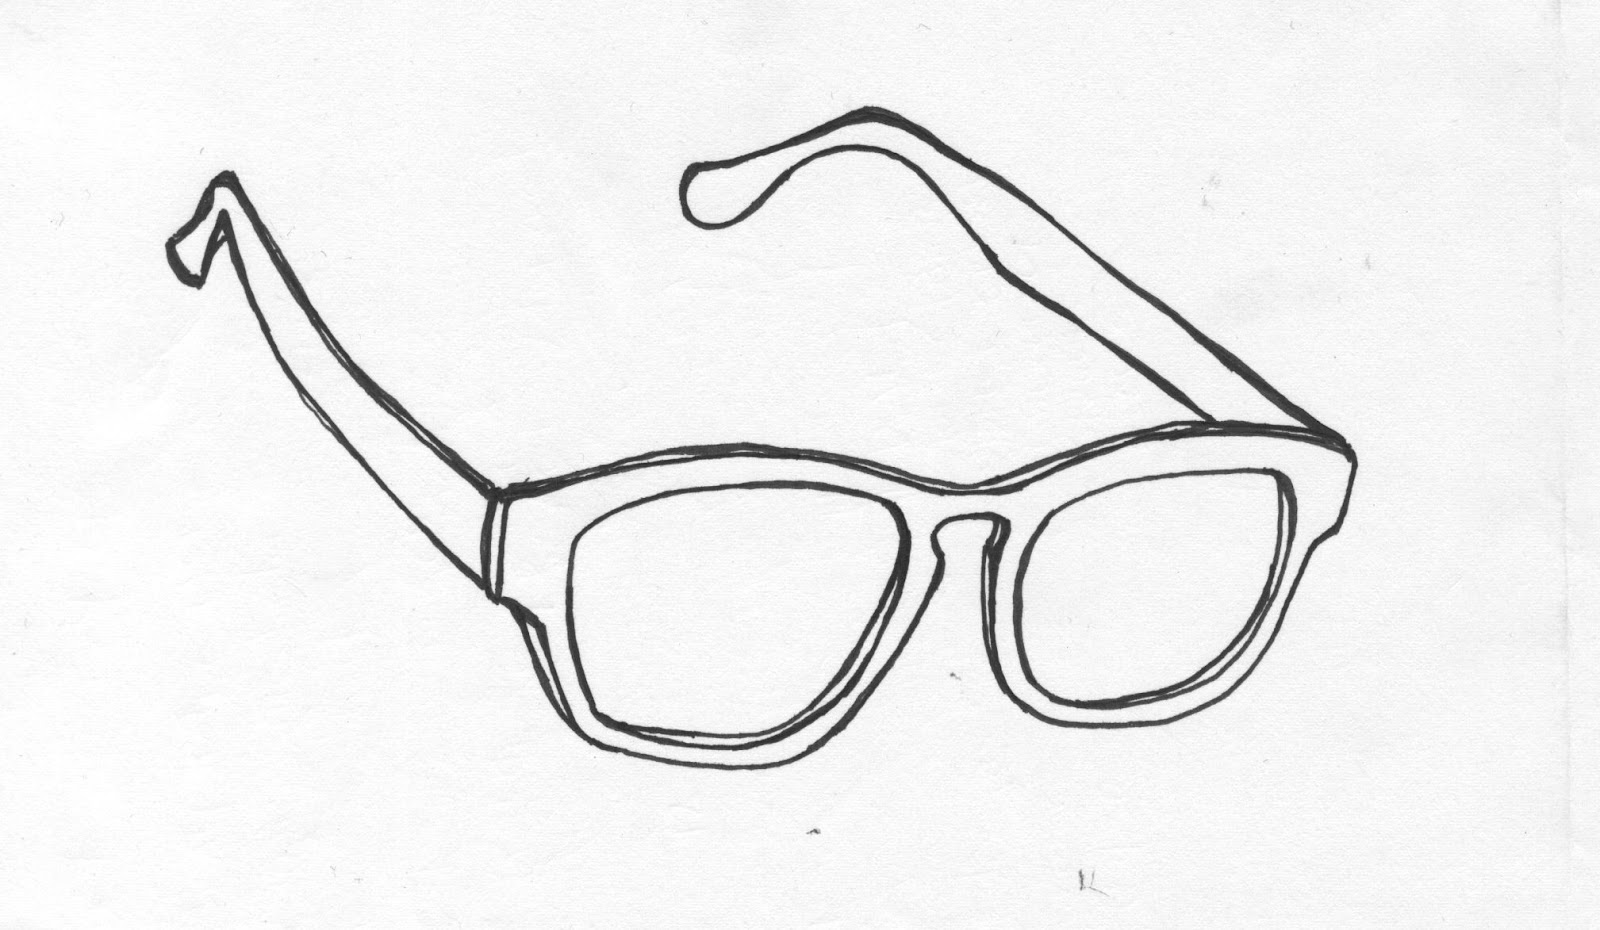 oakley sunglasses coloring pages | Sunglass Emoji Coloring Pages | David Simchi-Levi